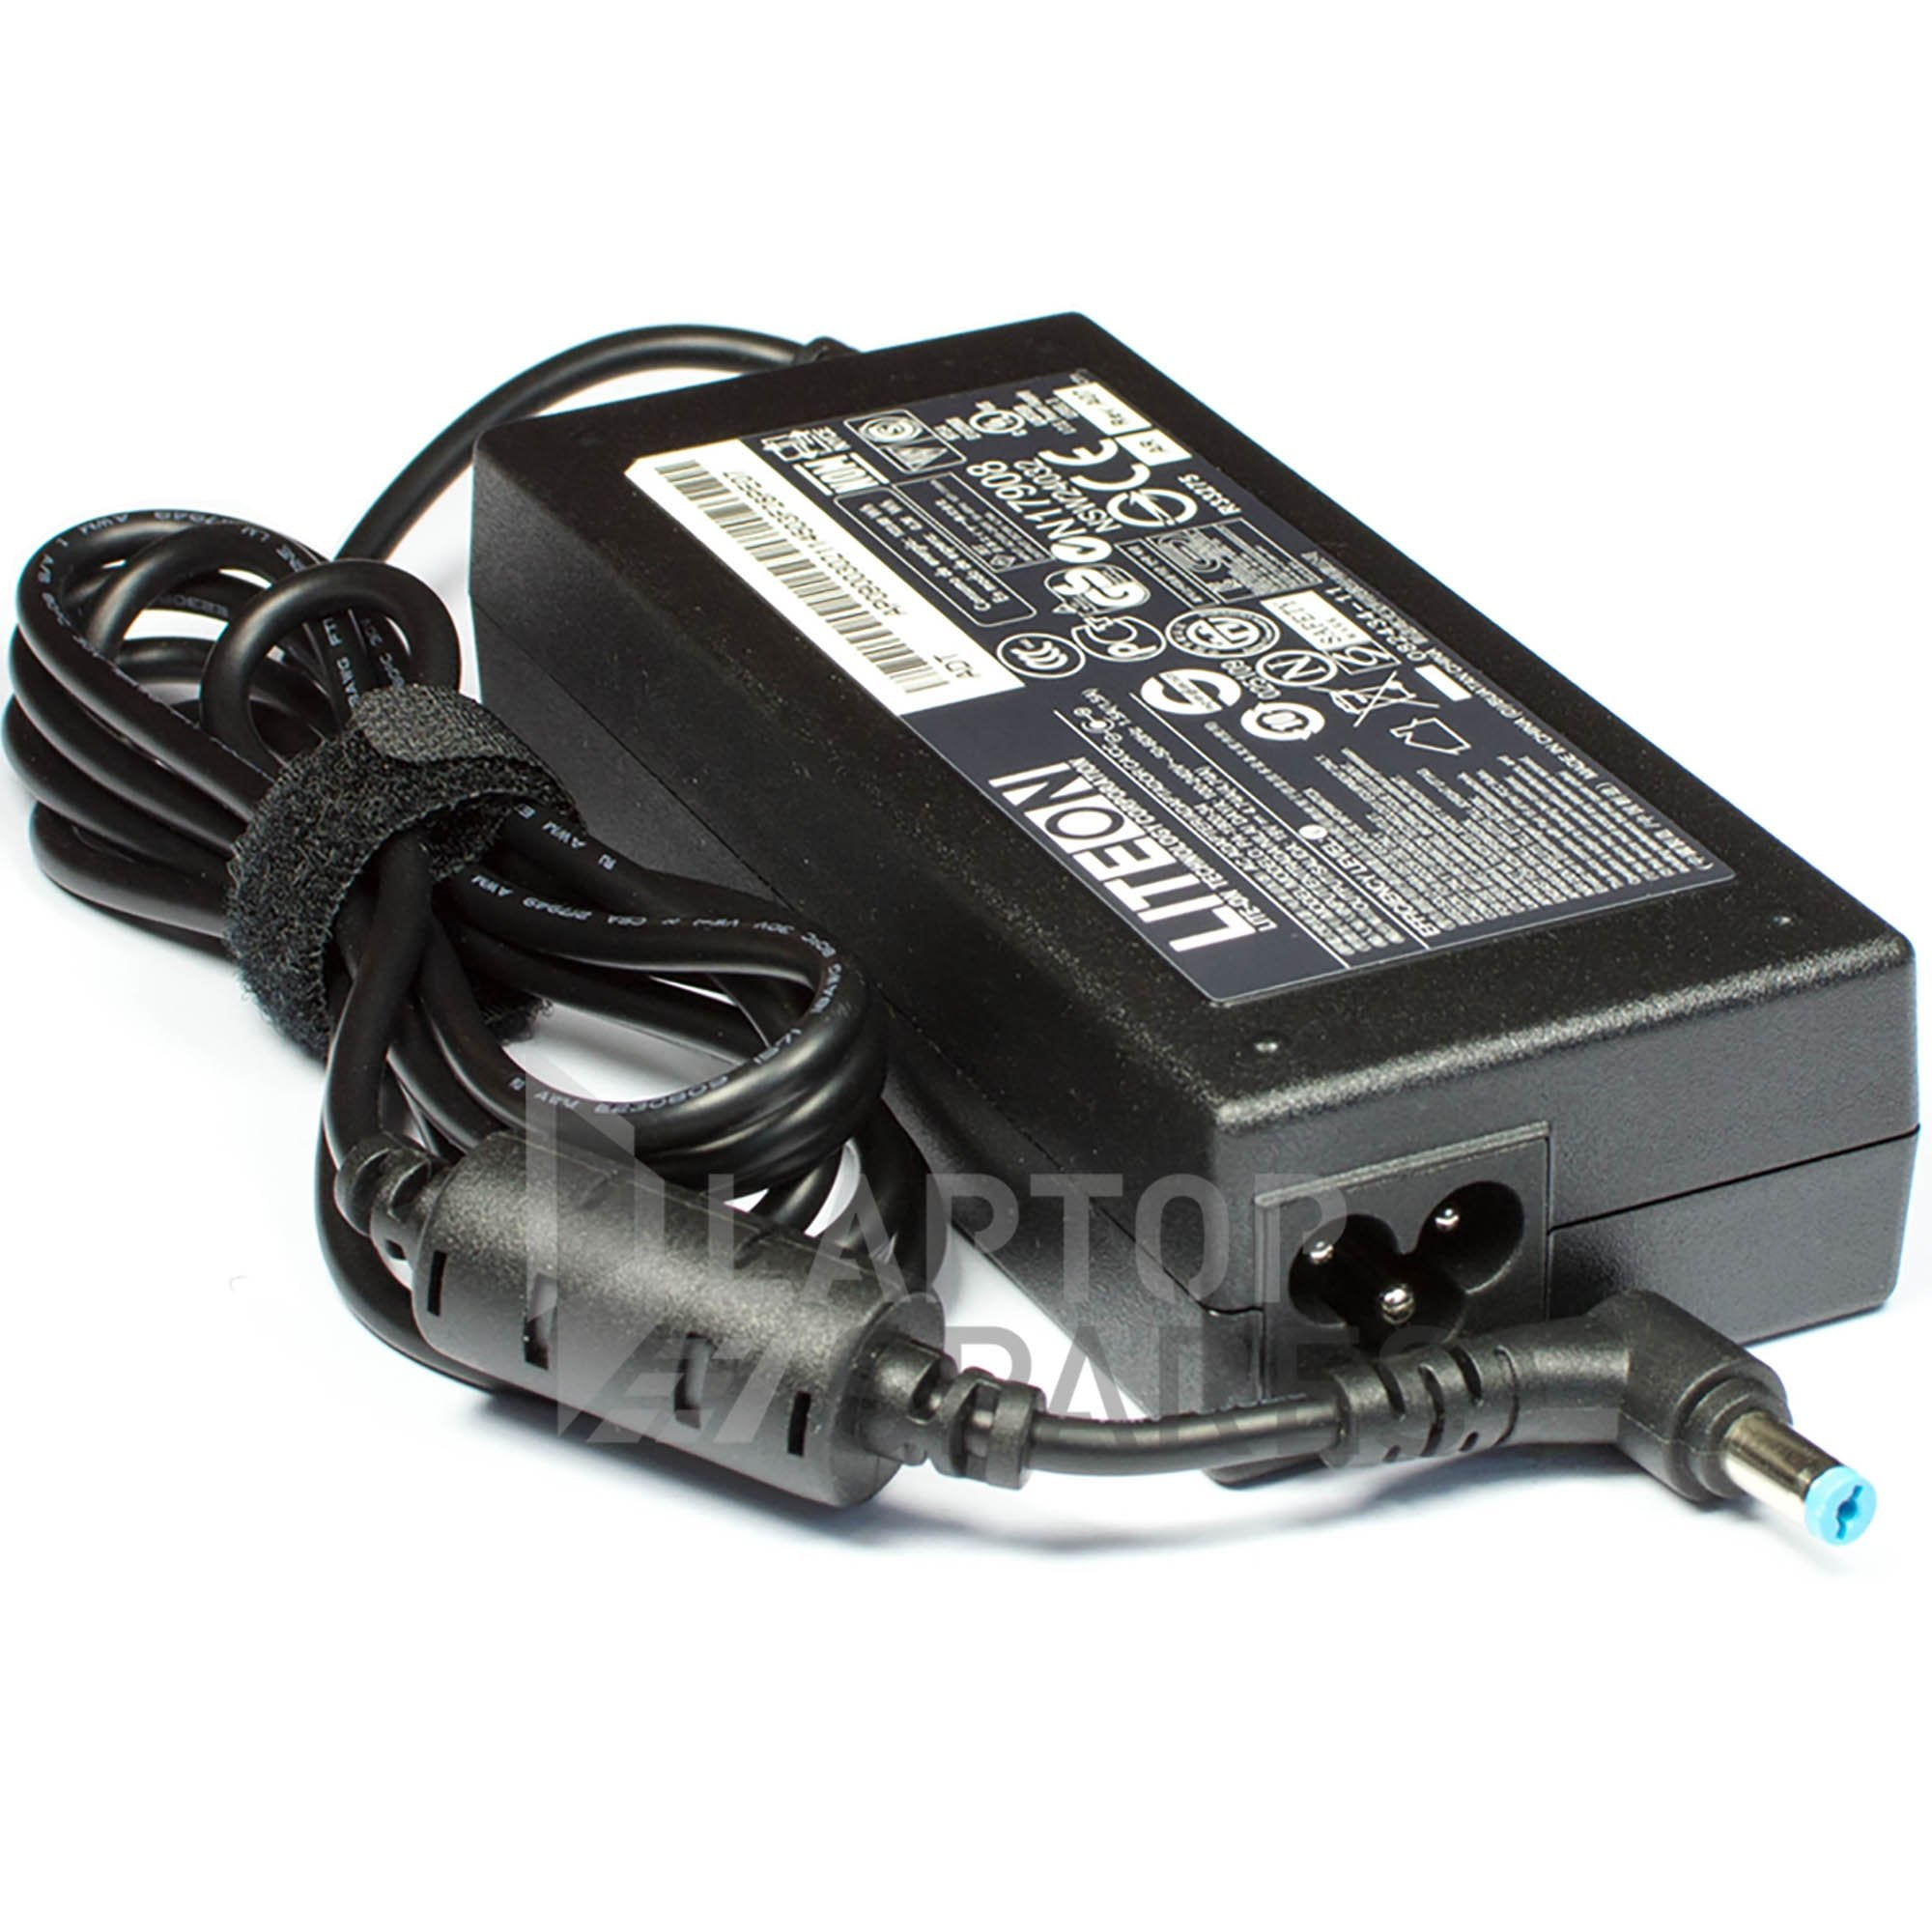 Acer Extensa 5620 Laptop AC Adapter Charger